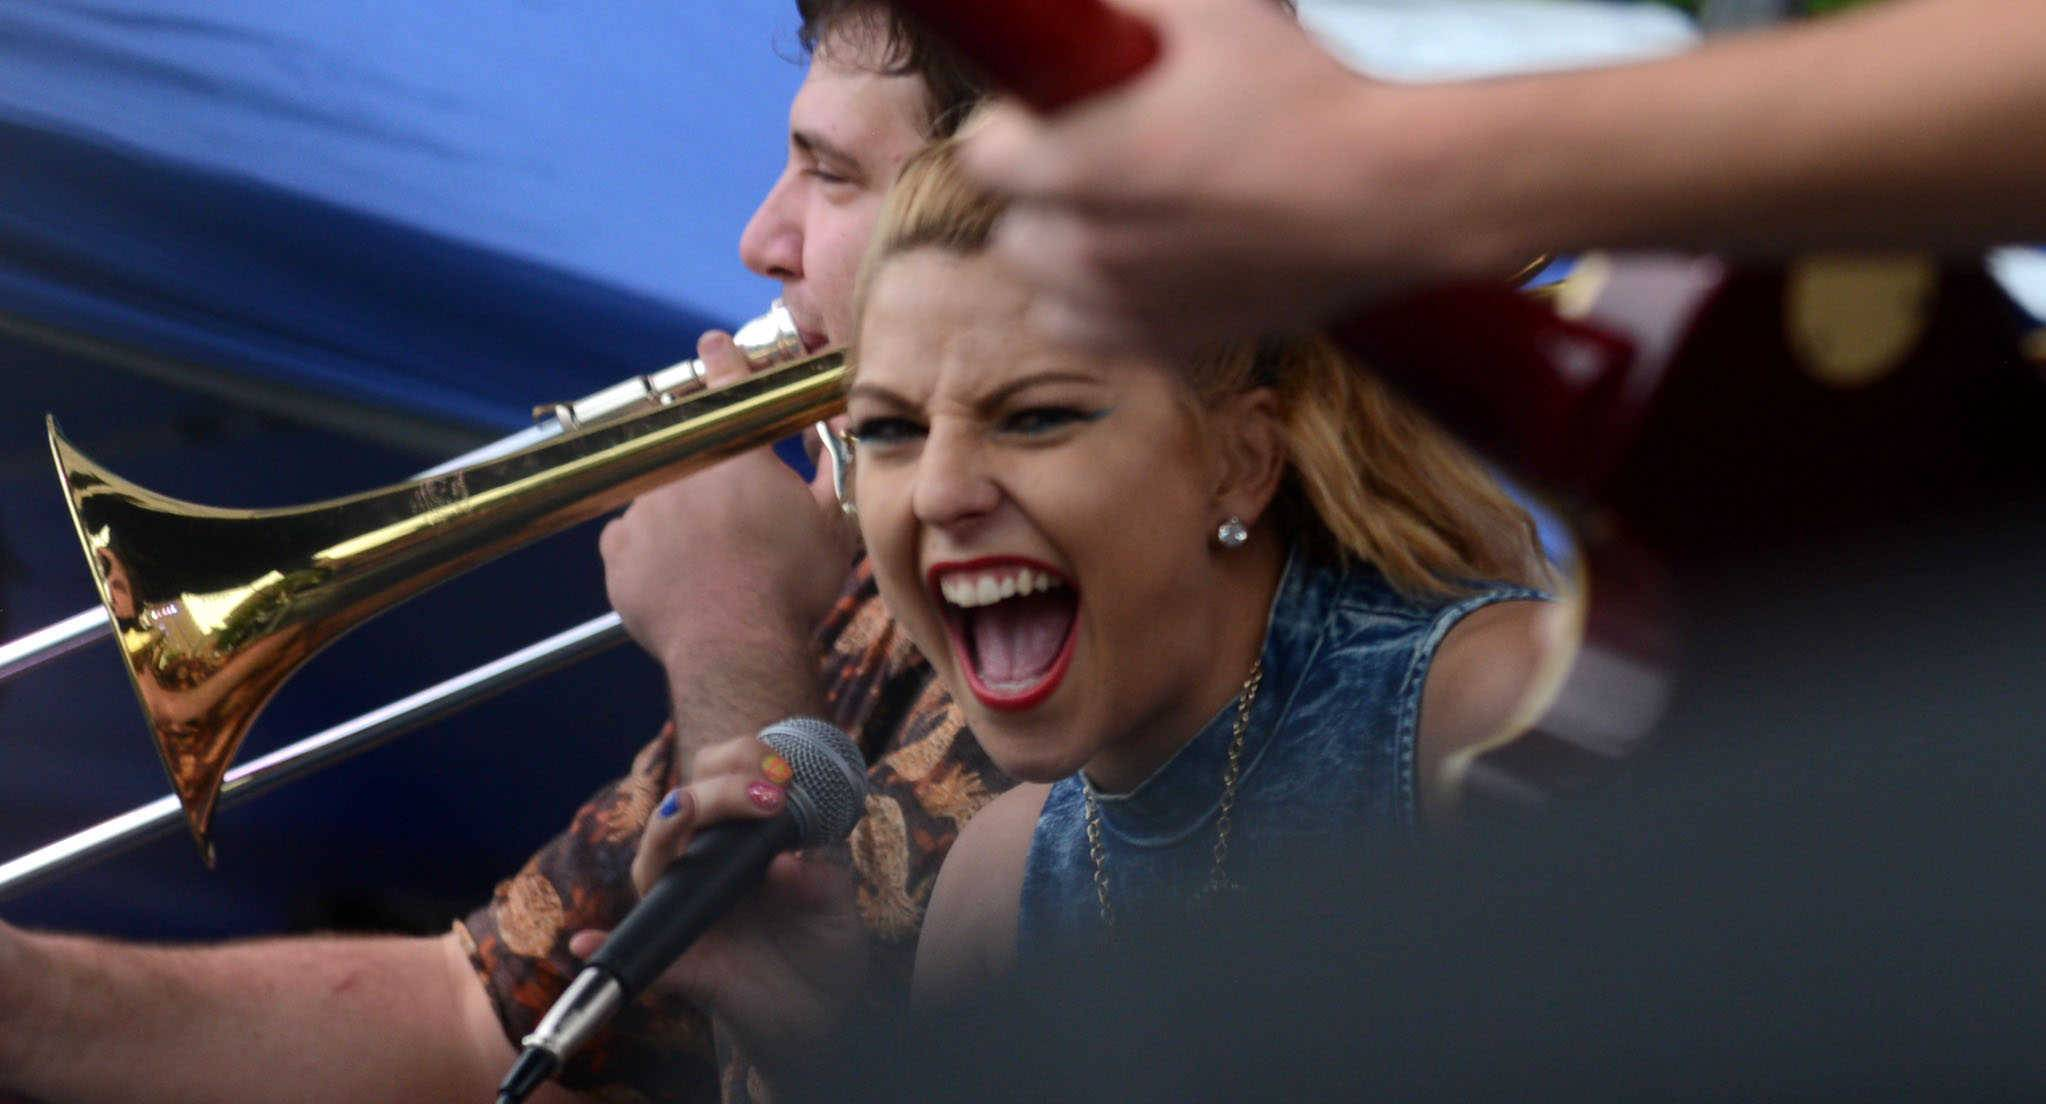 Laura Burke and her band Burke Valley was a co-winner with Ryan Cooper for Suburban Chicago's Got Talent in 2015.